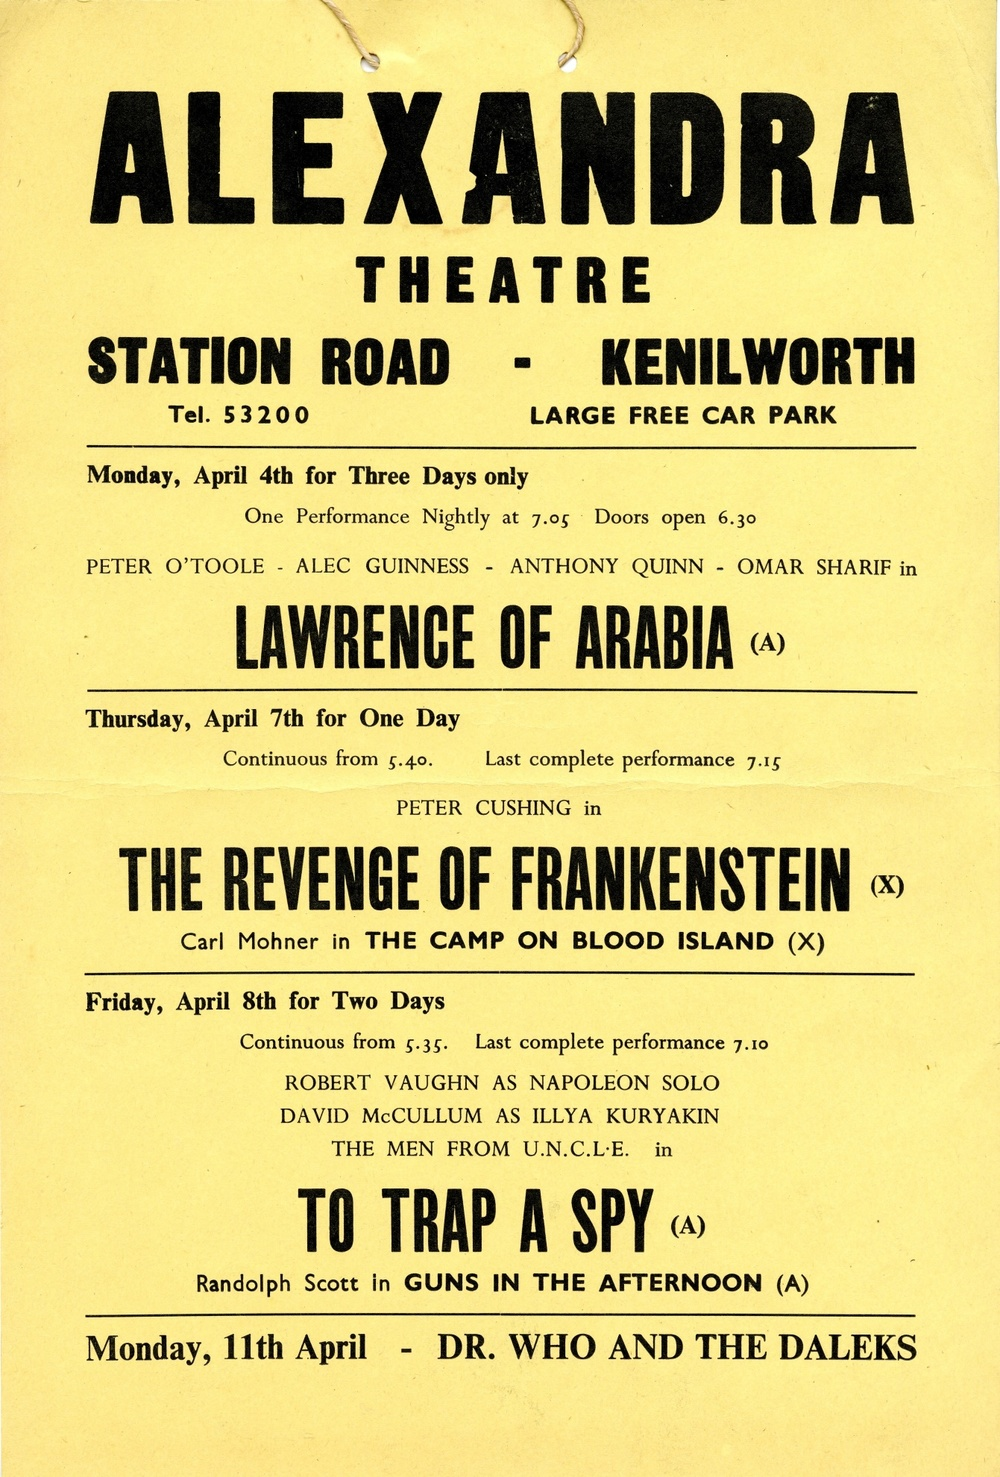 Advance Notice Playbill, Alexandra Theatre, Kenilworth